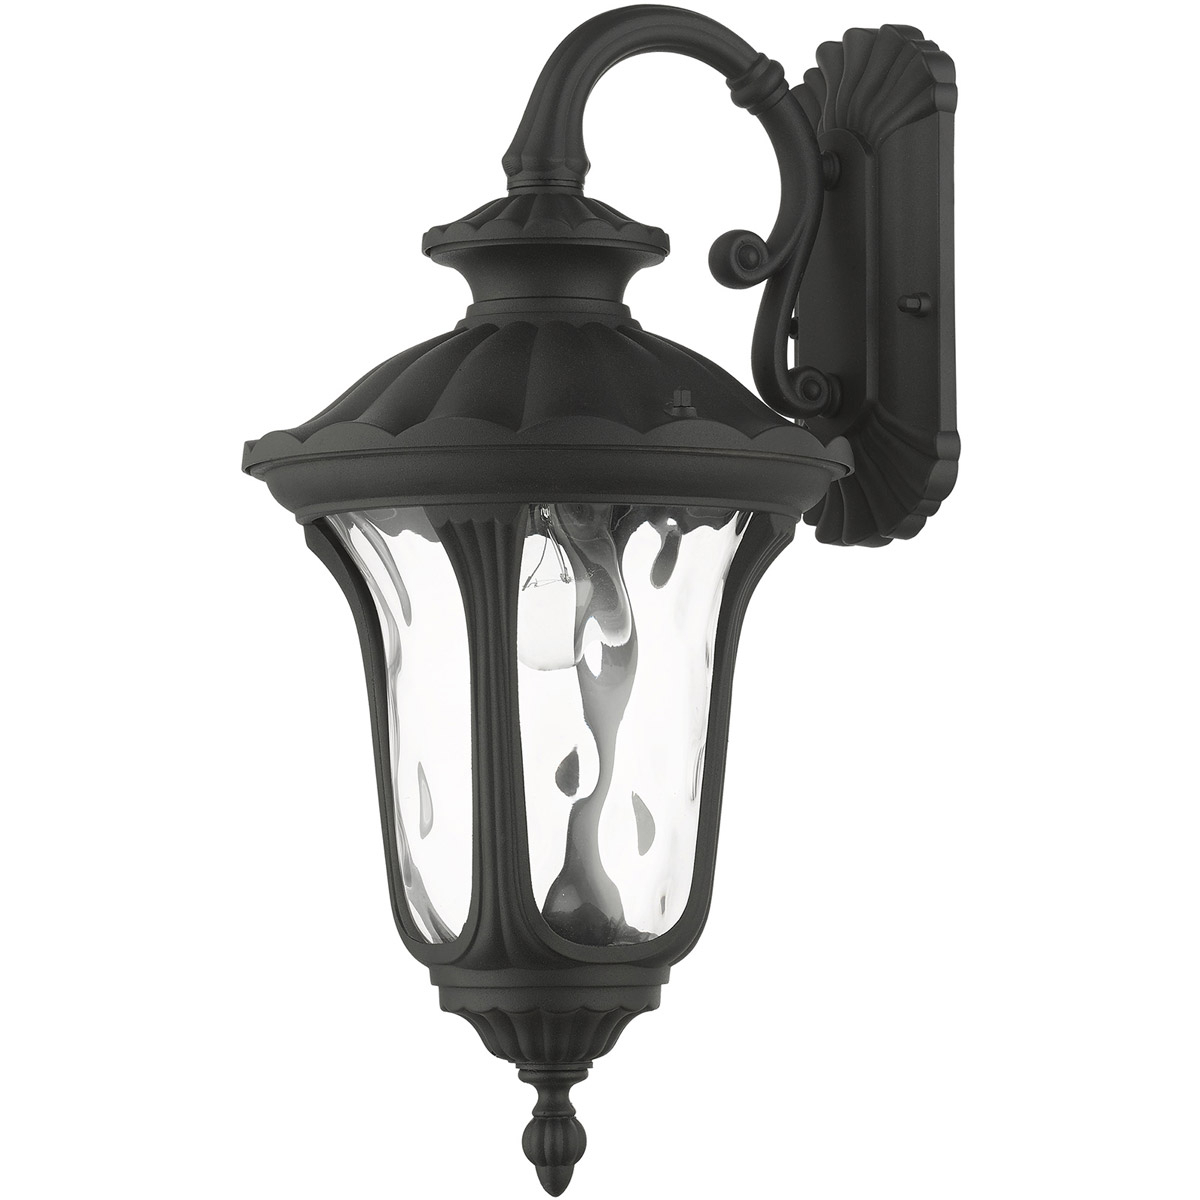 Favorite 1 – Bulb Outdoor Wall Lanterns With Regard To Livex 7851 14 Oxford 1 Light 16 Inch Textured Black (View 2 of 20)